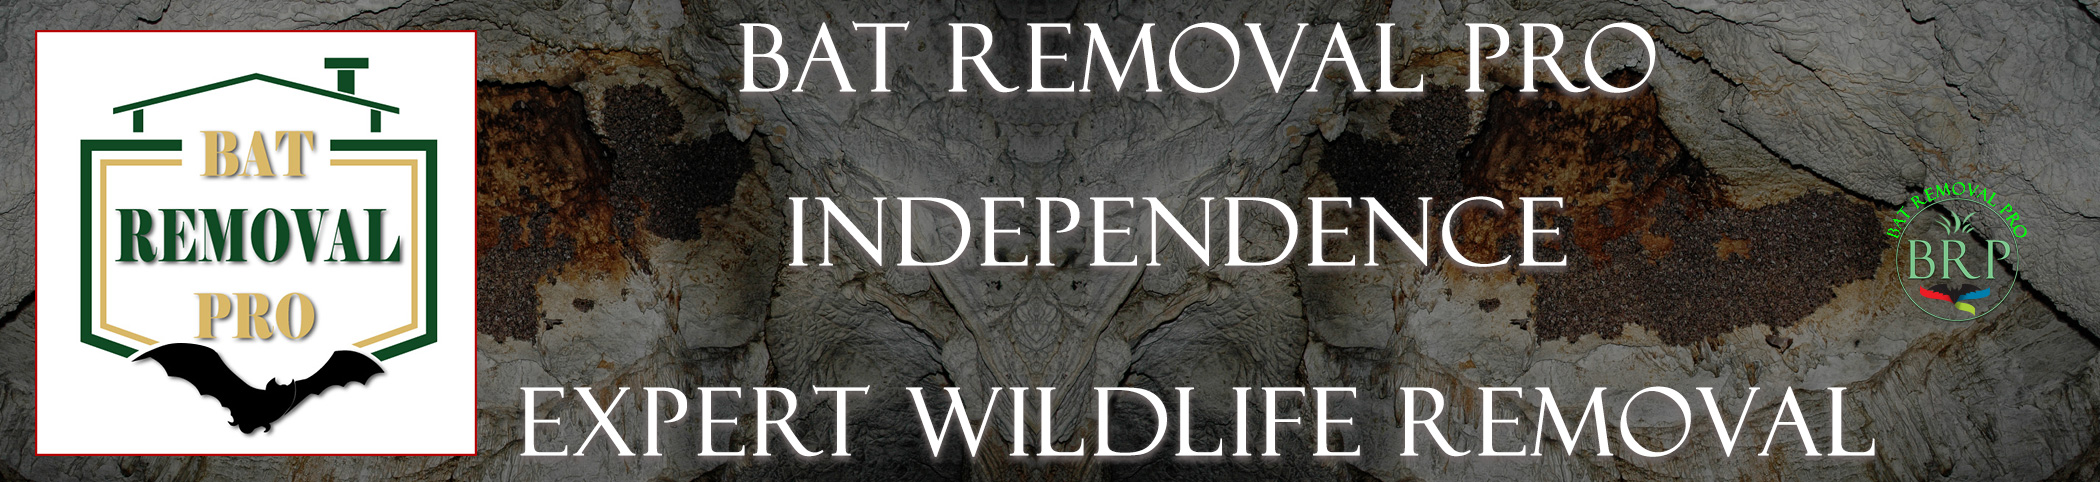 independence-bat-removal-at-bat-removal-pro-header-image